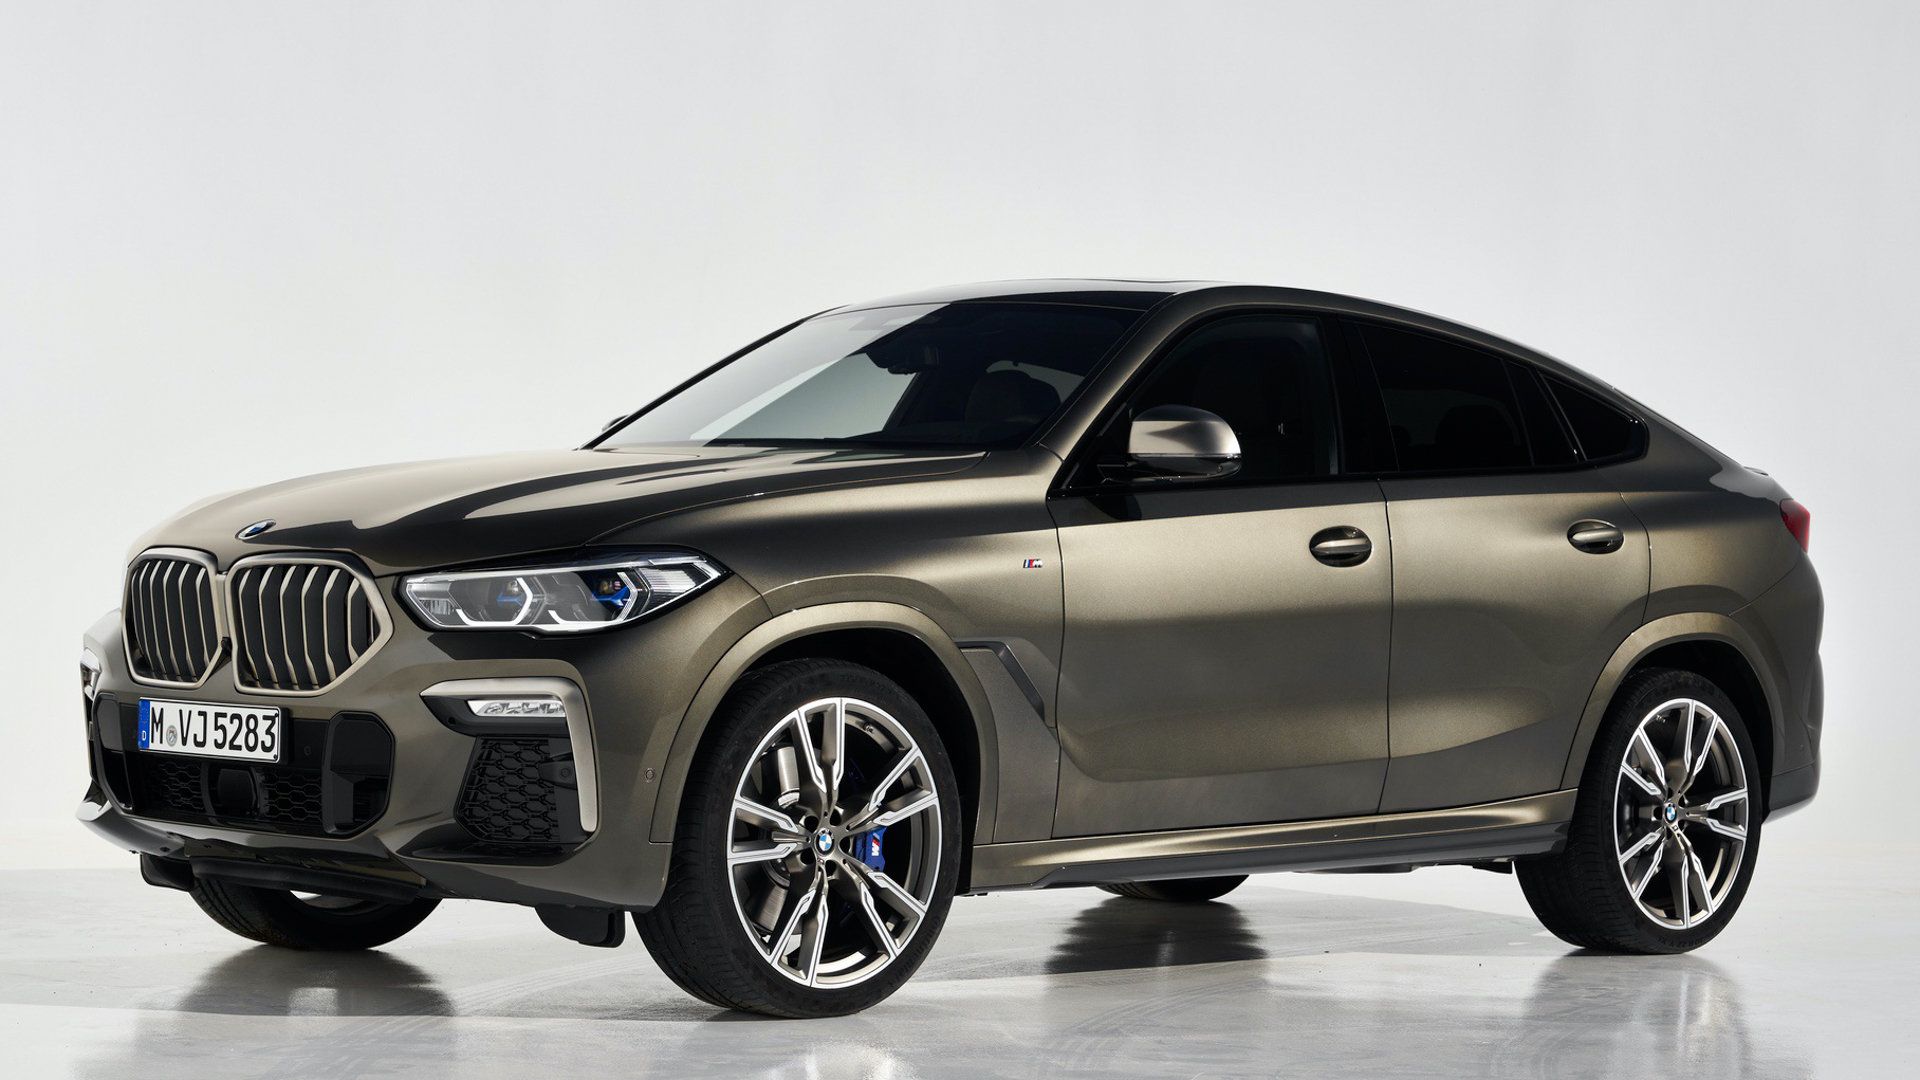 G06 BMW X6 vs Mercedes Benz GLE Coupe 7 of 10